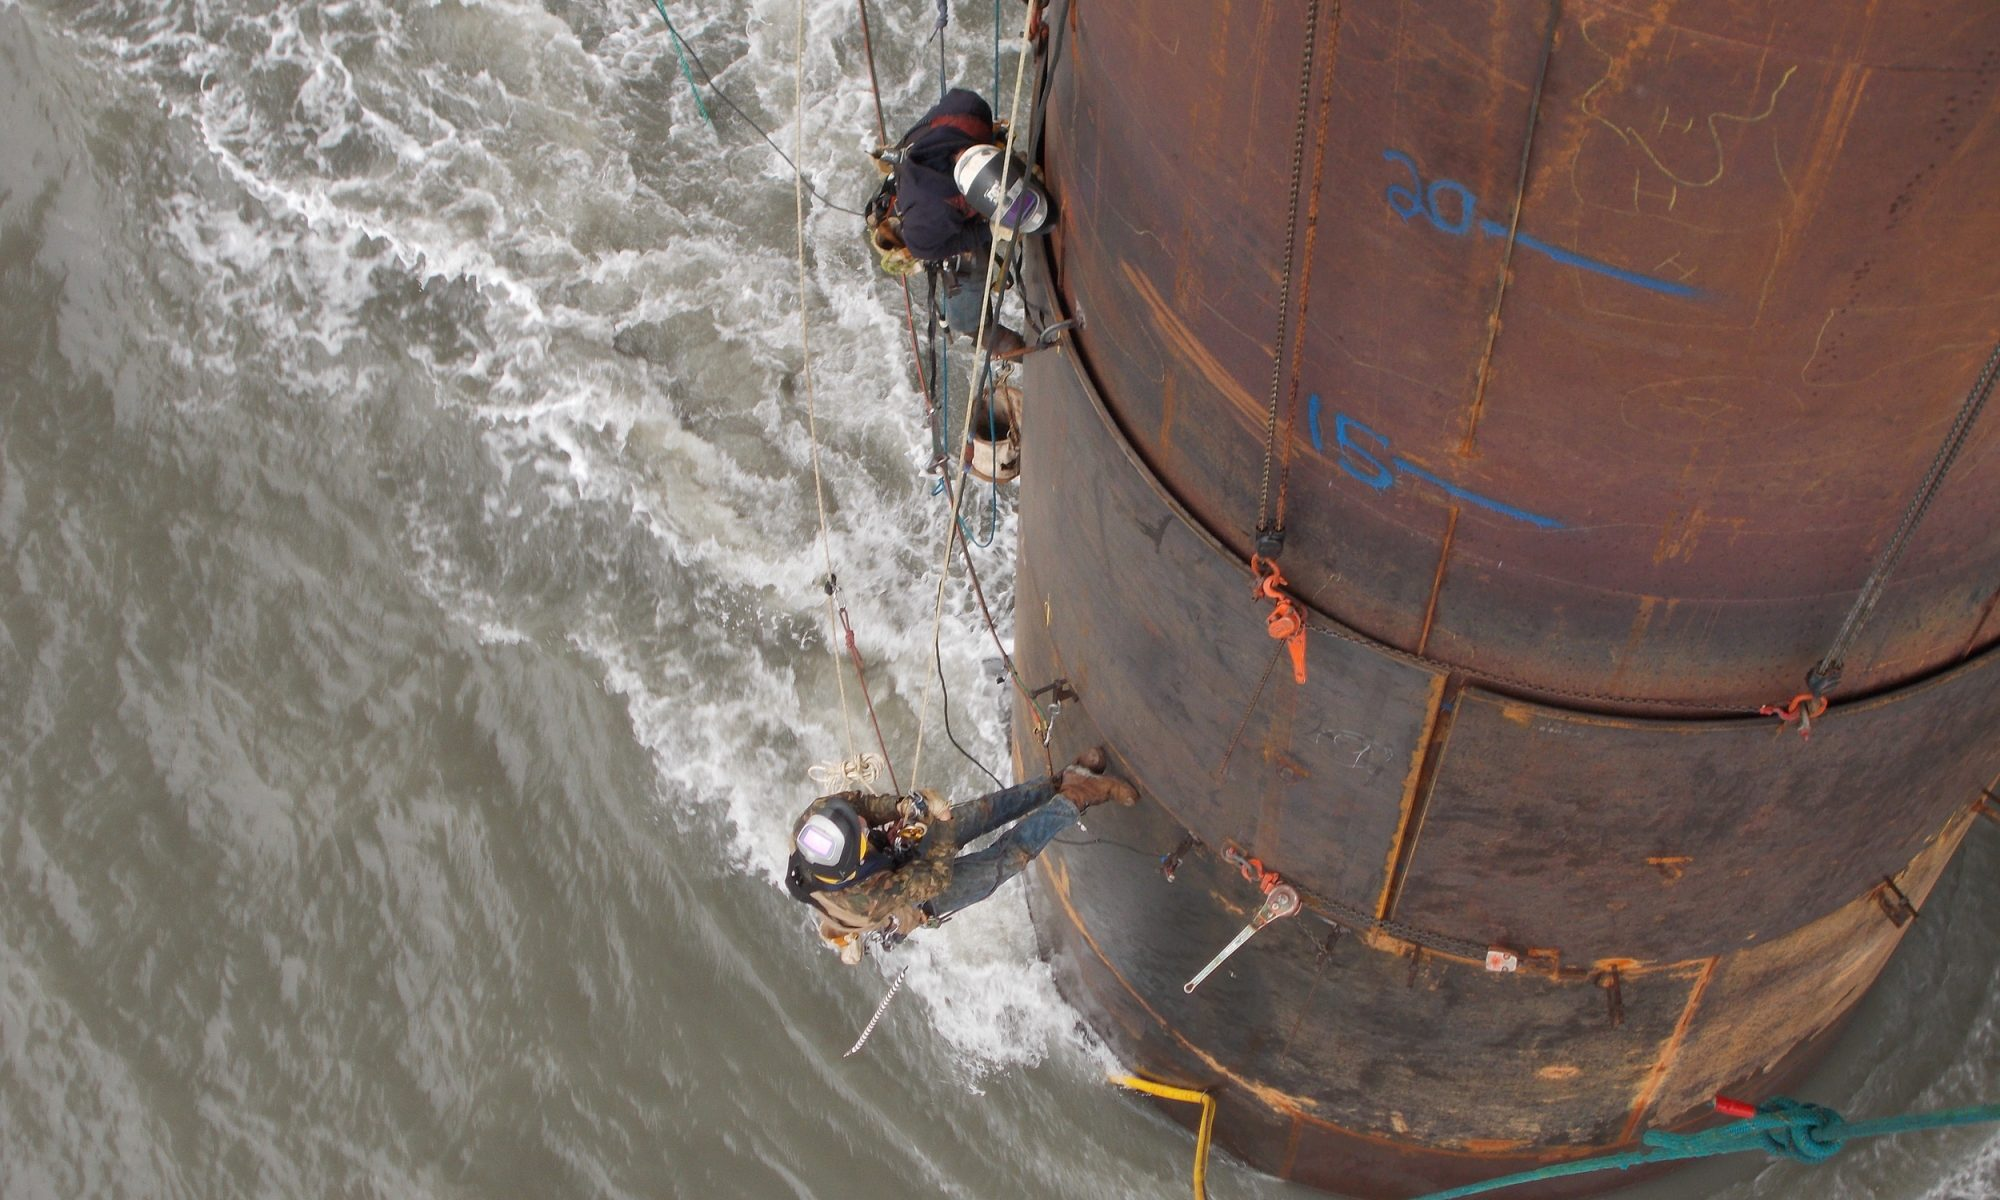 A pair of rope access technicians work along side an offshore oil rig easily in an otherwise difficult to reach area.